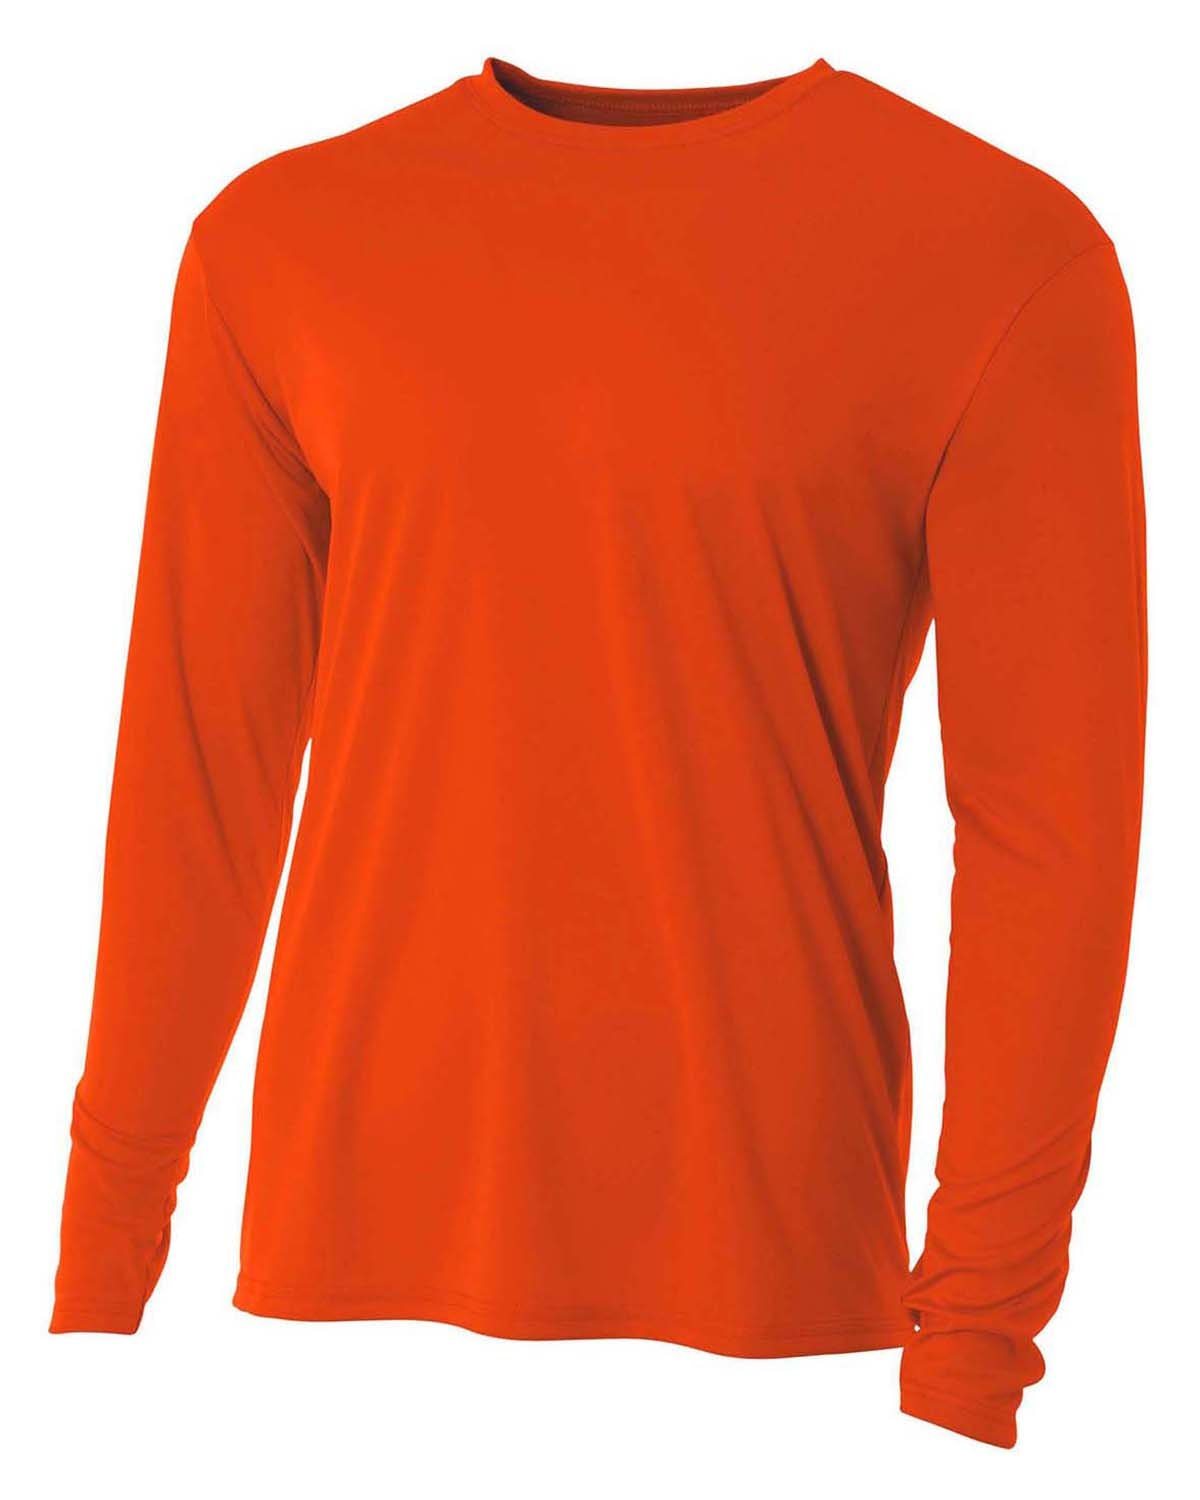 A4 Youth Long Sleeve Cooling Performance Crew Shirt ATHLETIC ORANGE